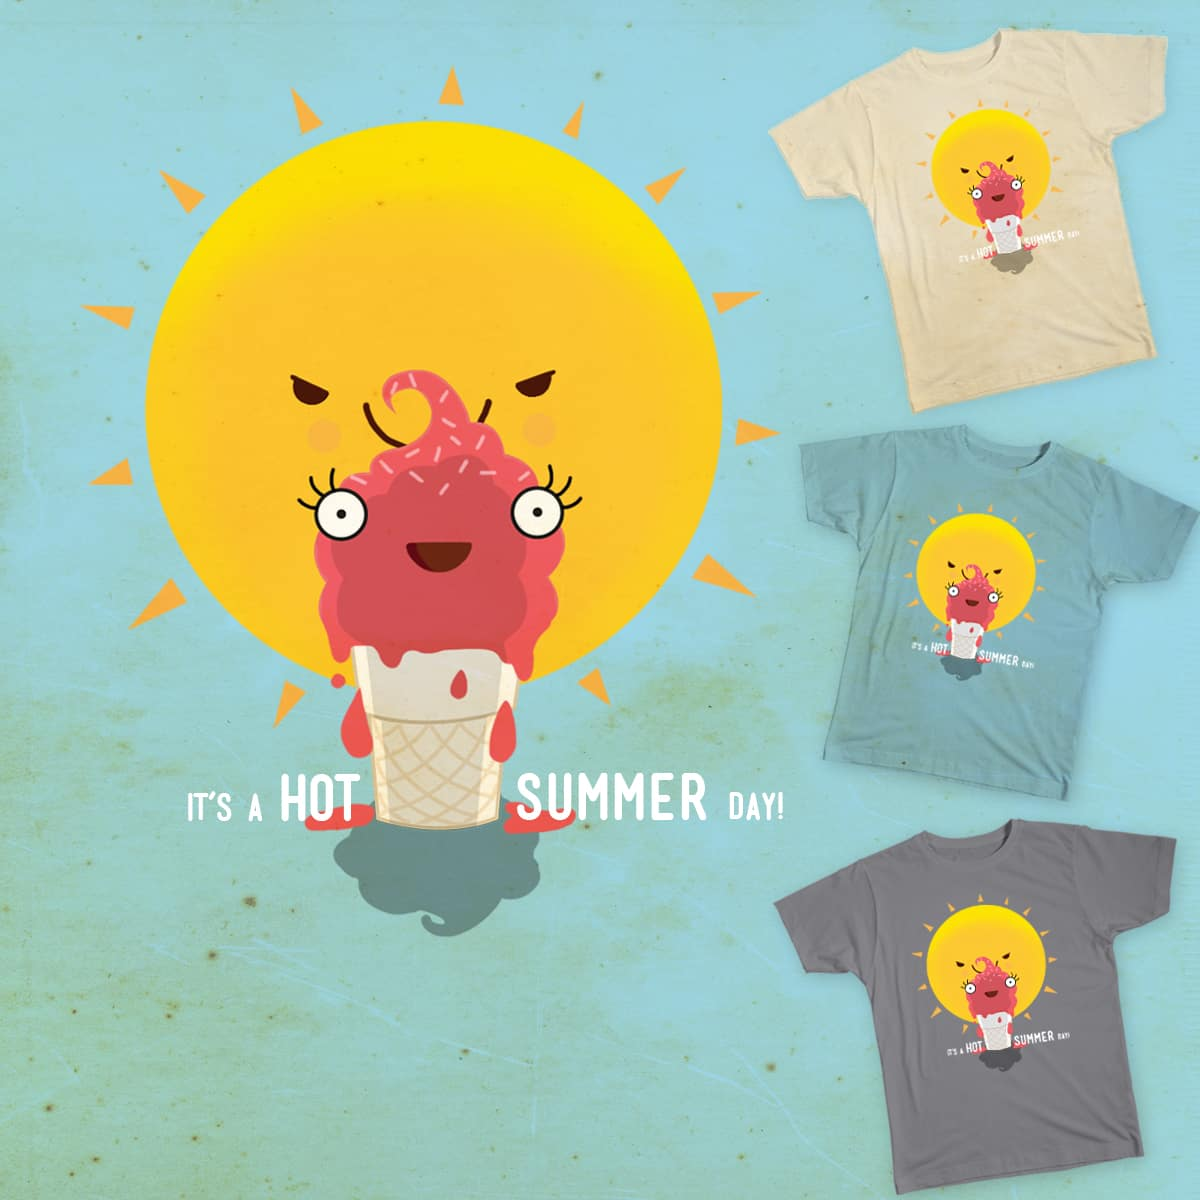 Perfect time for Sunbathing! by Shirin Khara on Threadless